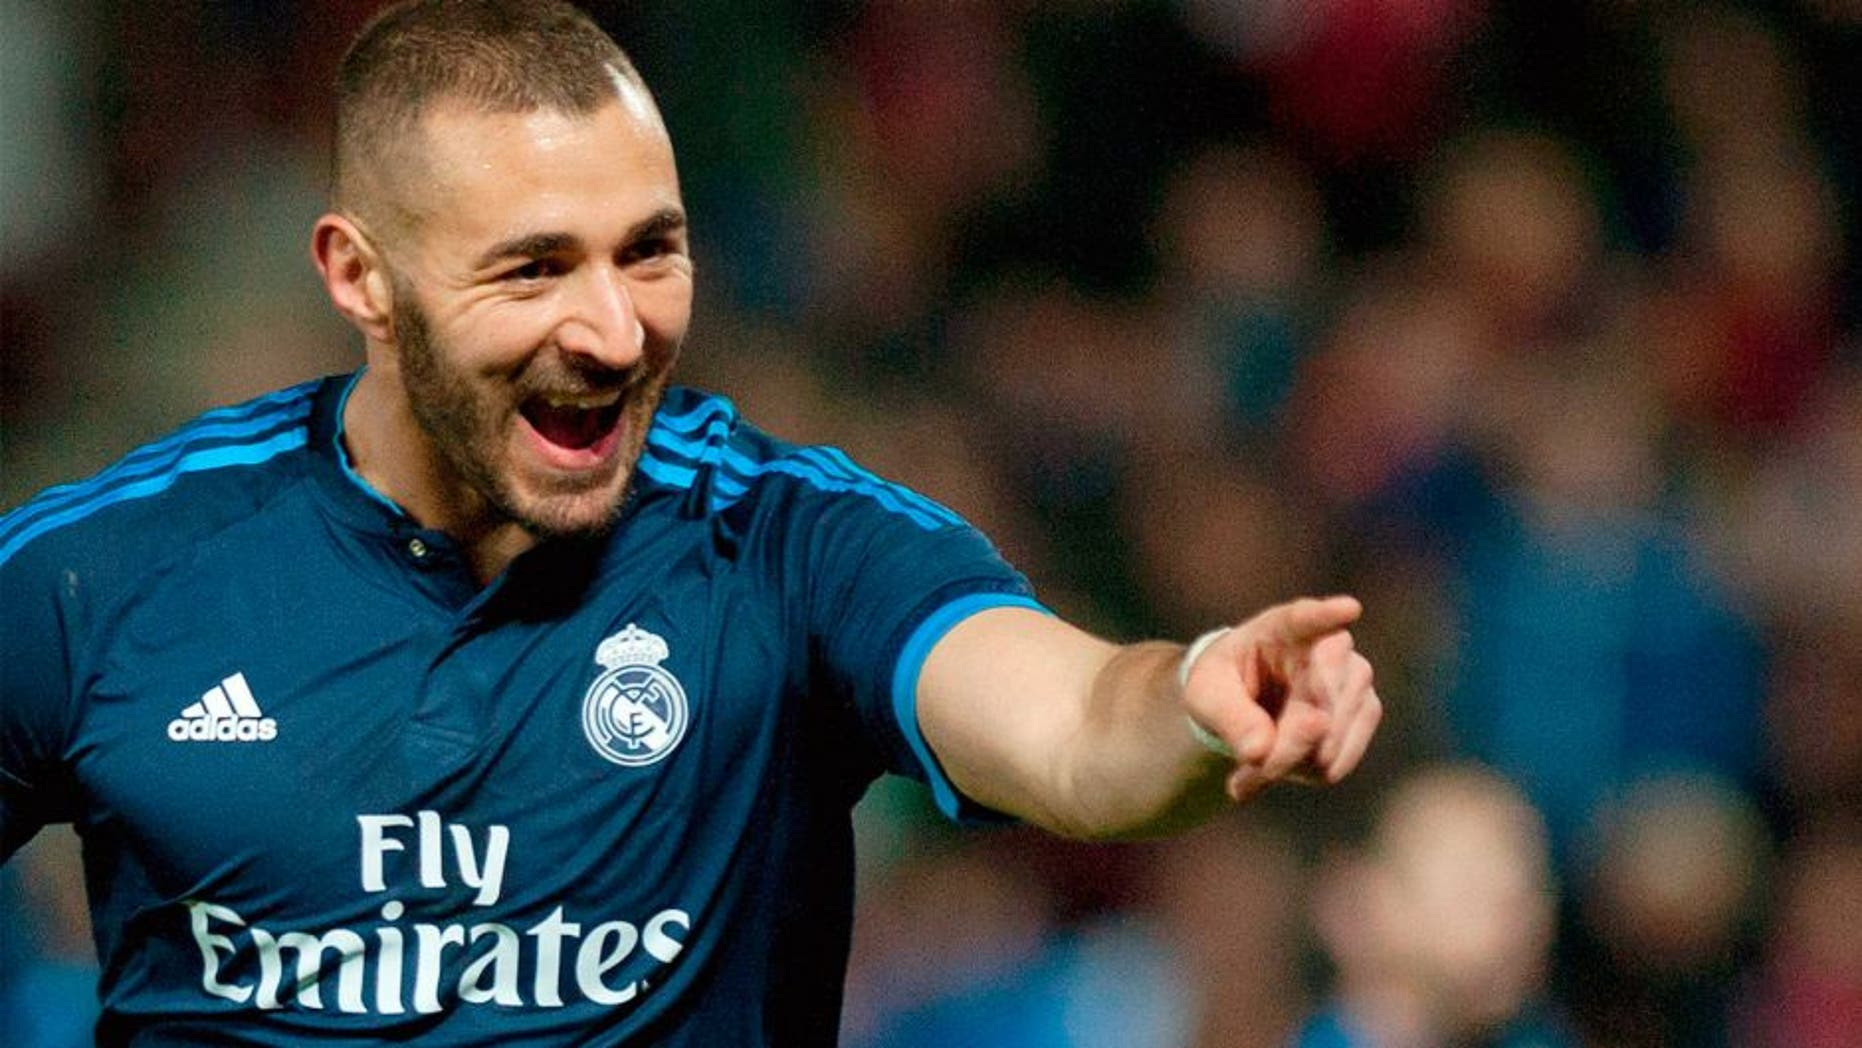 Real Madrid's French forward Karim Benzema celebrates a goal during the Spanish league football match Granada FC vs Real Madrid CF at Nuevo Los Carmenes stadium in Granada on February 7, 2016. AFP PHOTO / JORGE GUERRERO / AFP / Jorge Guerrero (Photo credit should read JORGE GUERRERO/AFP/Getty Images)